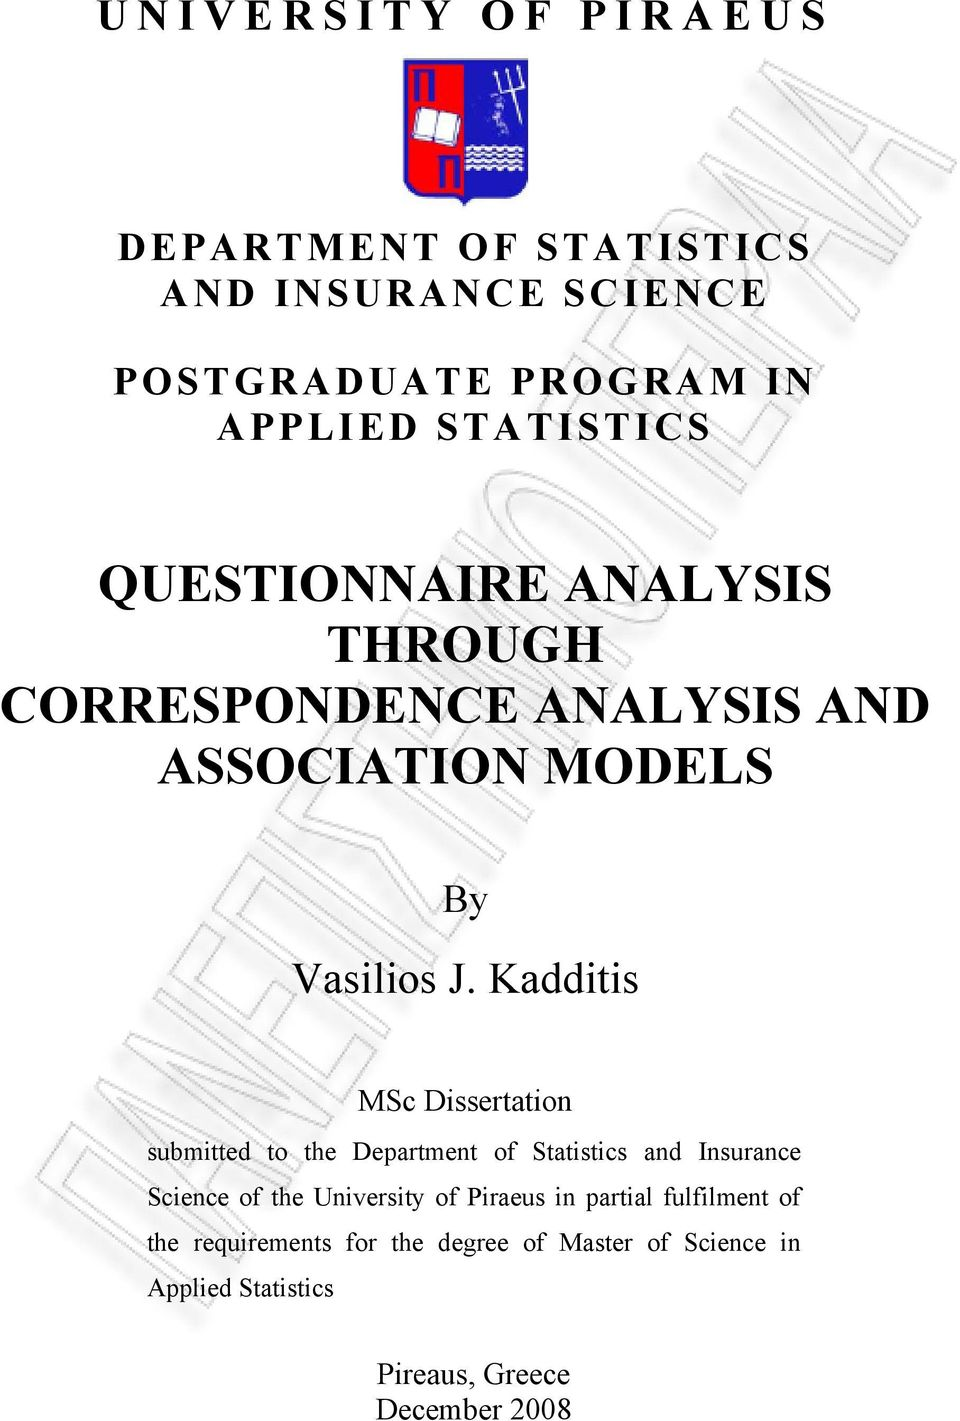 Kadditis MSc Dissertation submitted to the Department of Statistics and Insurance Science of the University of